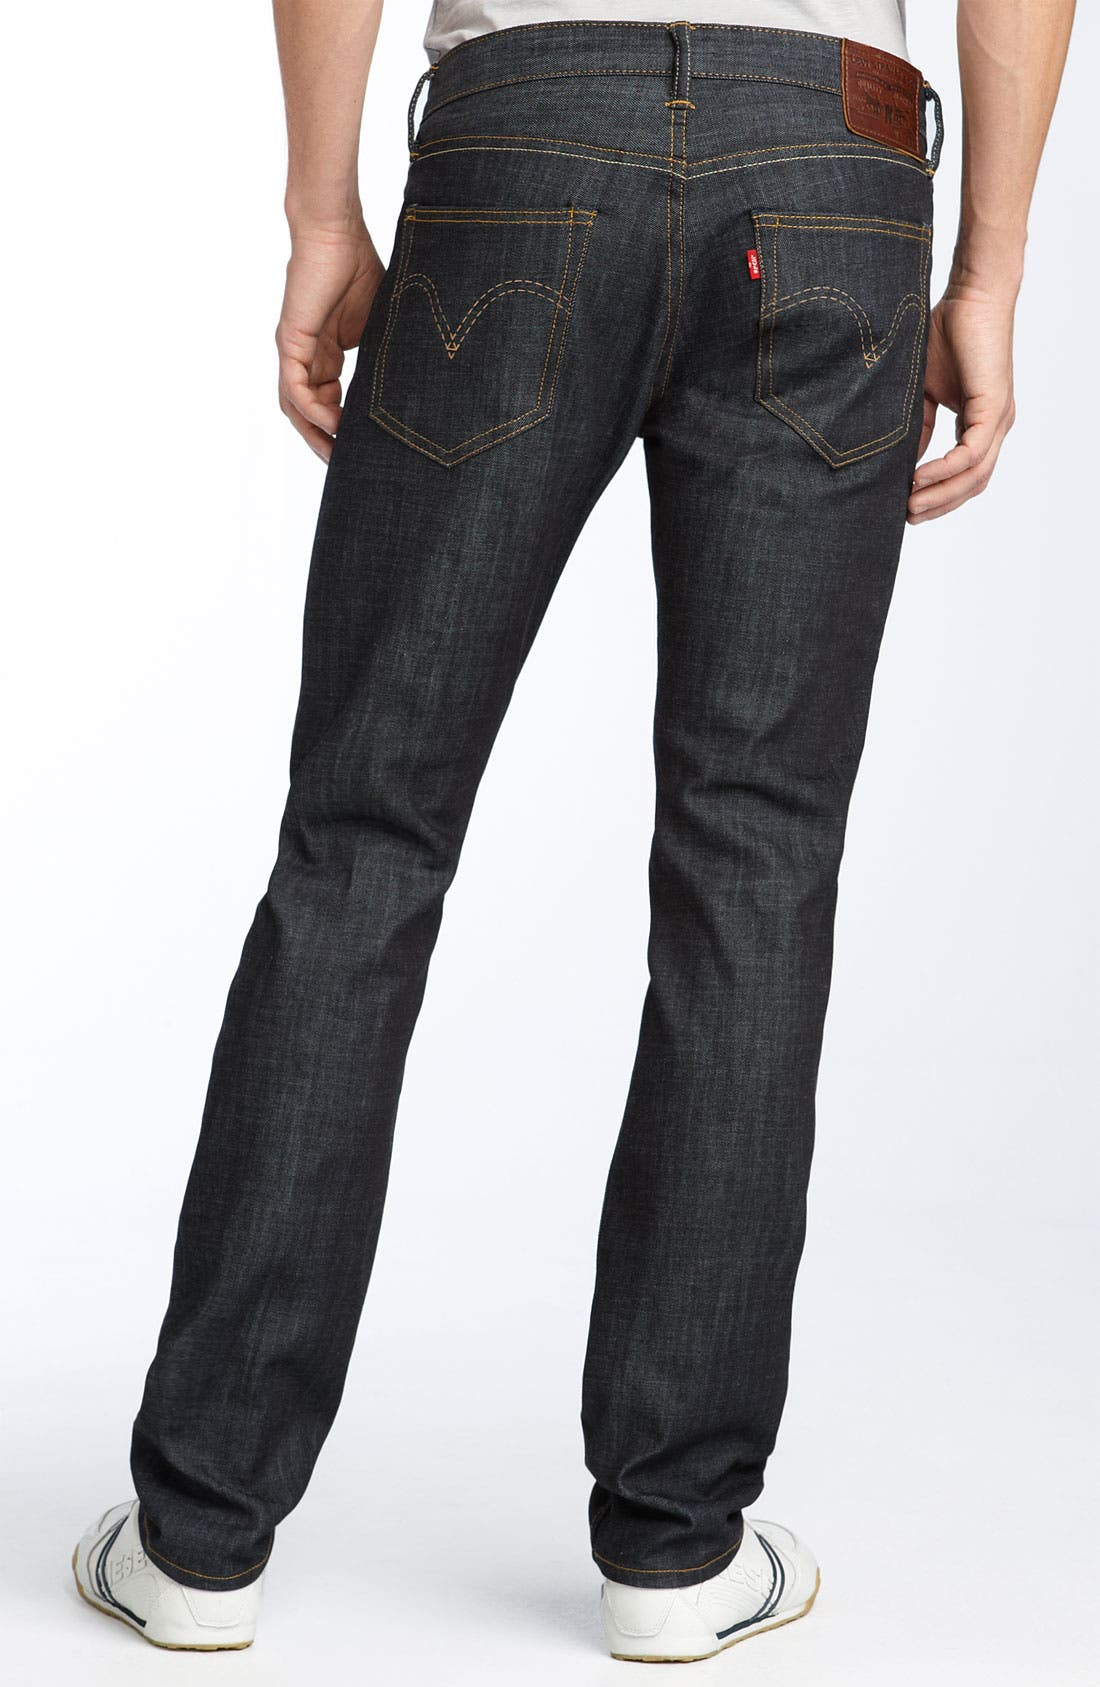 Main Image - Levi's® Red Tab™ 'Matchstick' Skinny Jeans (Stretch Rigid)